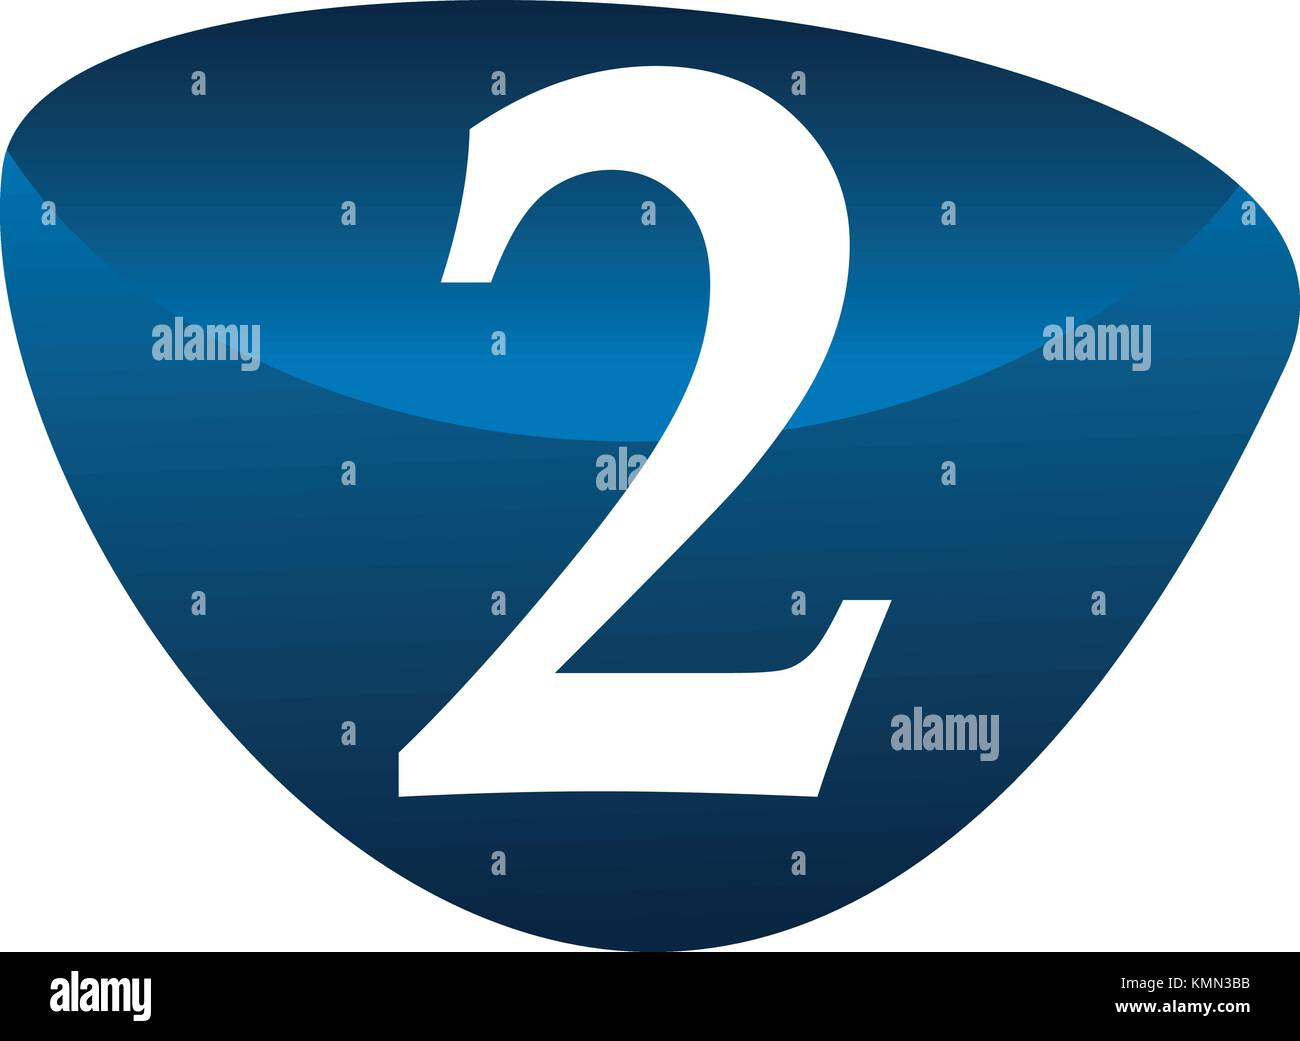 Modern Number 2 - Stock Image